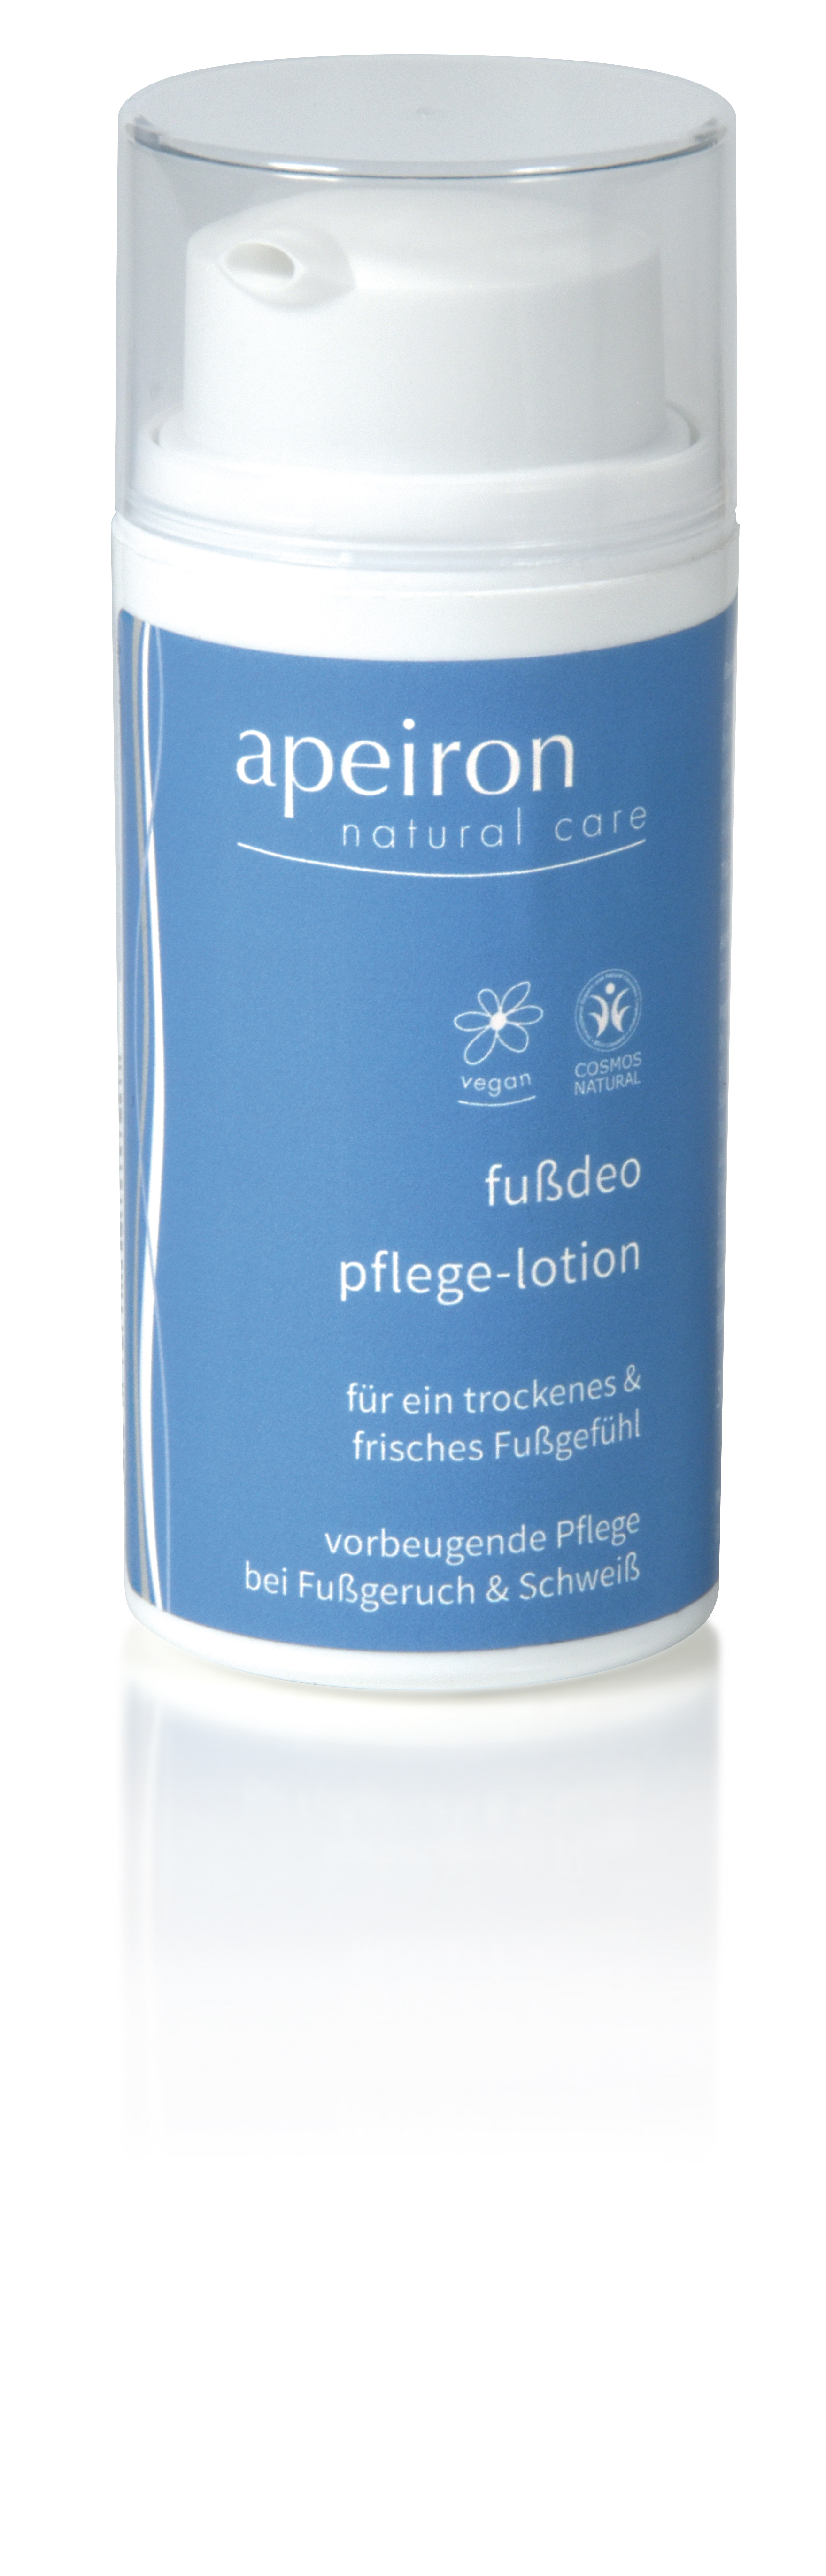 Fußdeo Pflege-Lotion